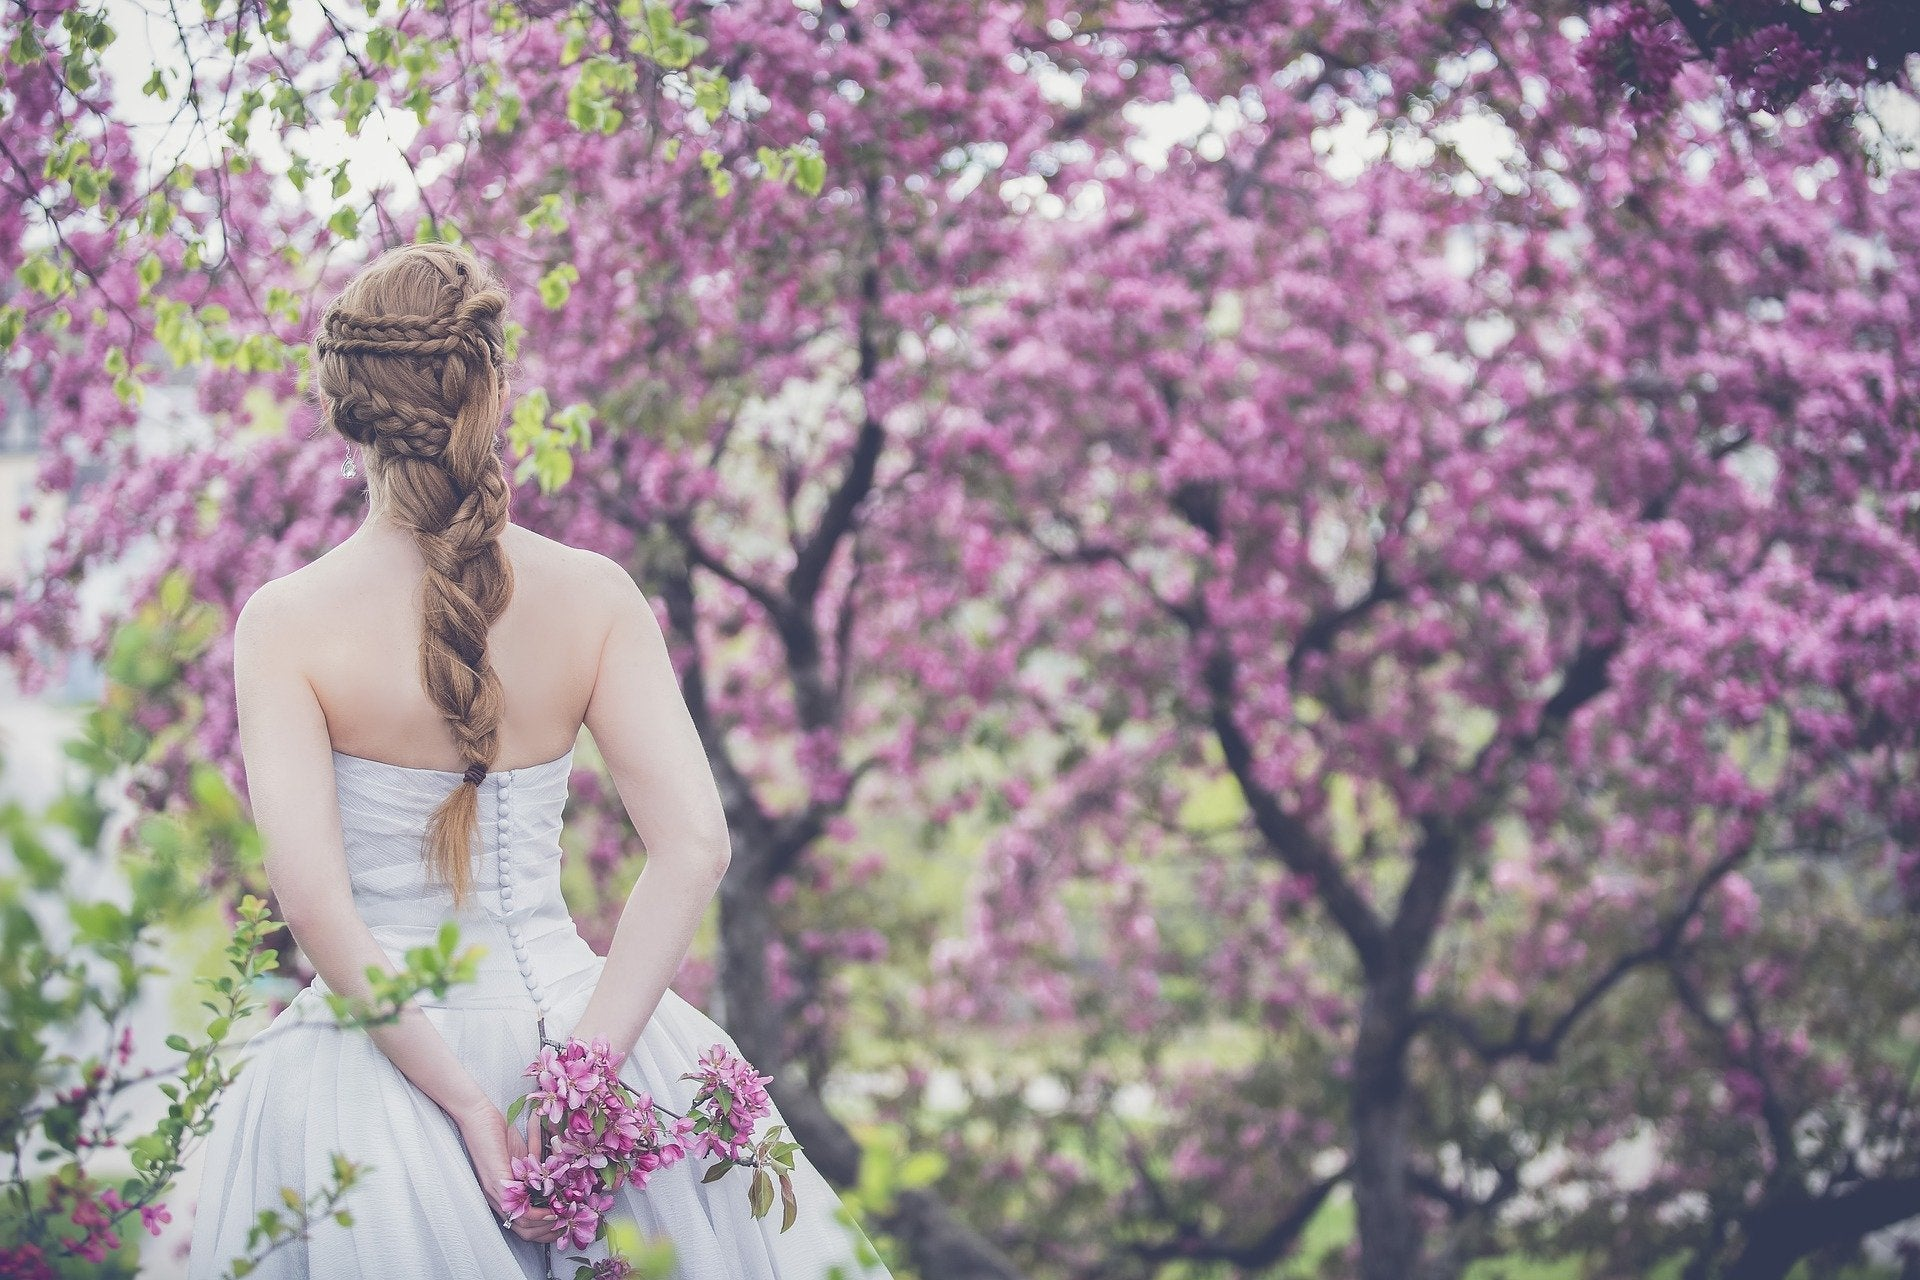 The Top 5 Wedding Trends You Should Know About in 2020